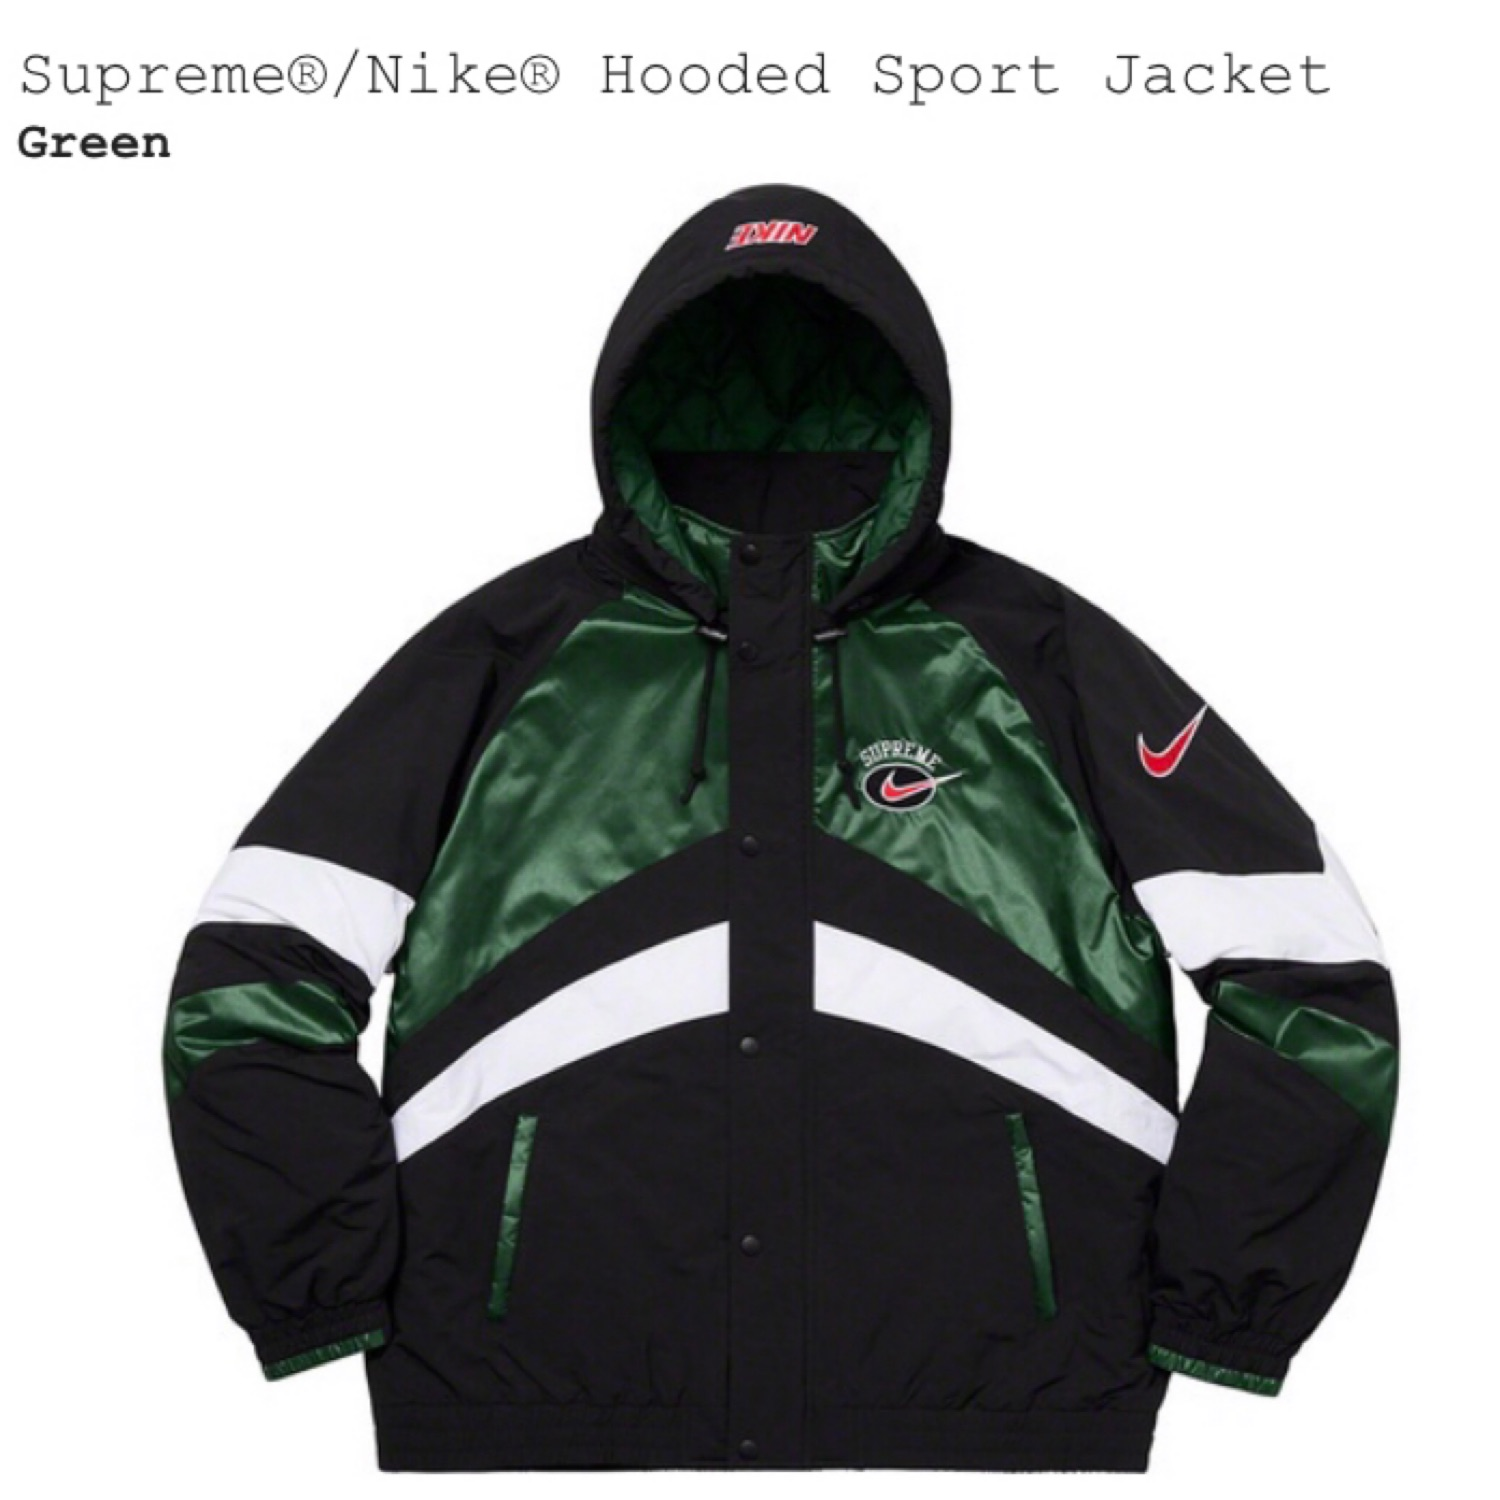 Supreme X Nike Hooded Sport Jacket Green Size L